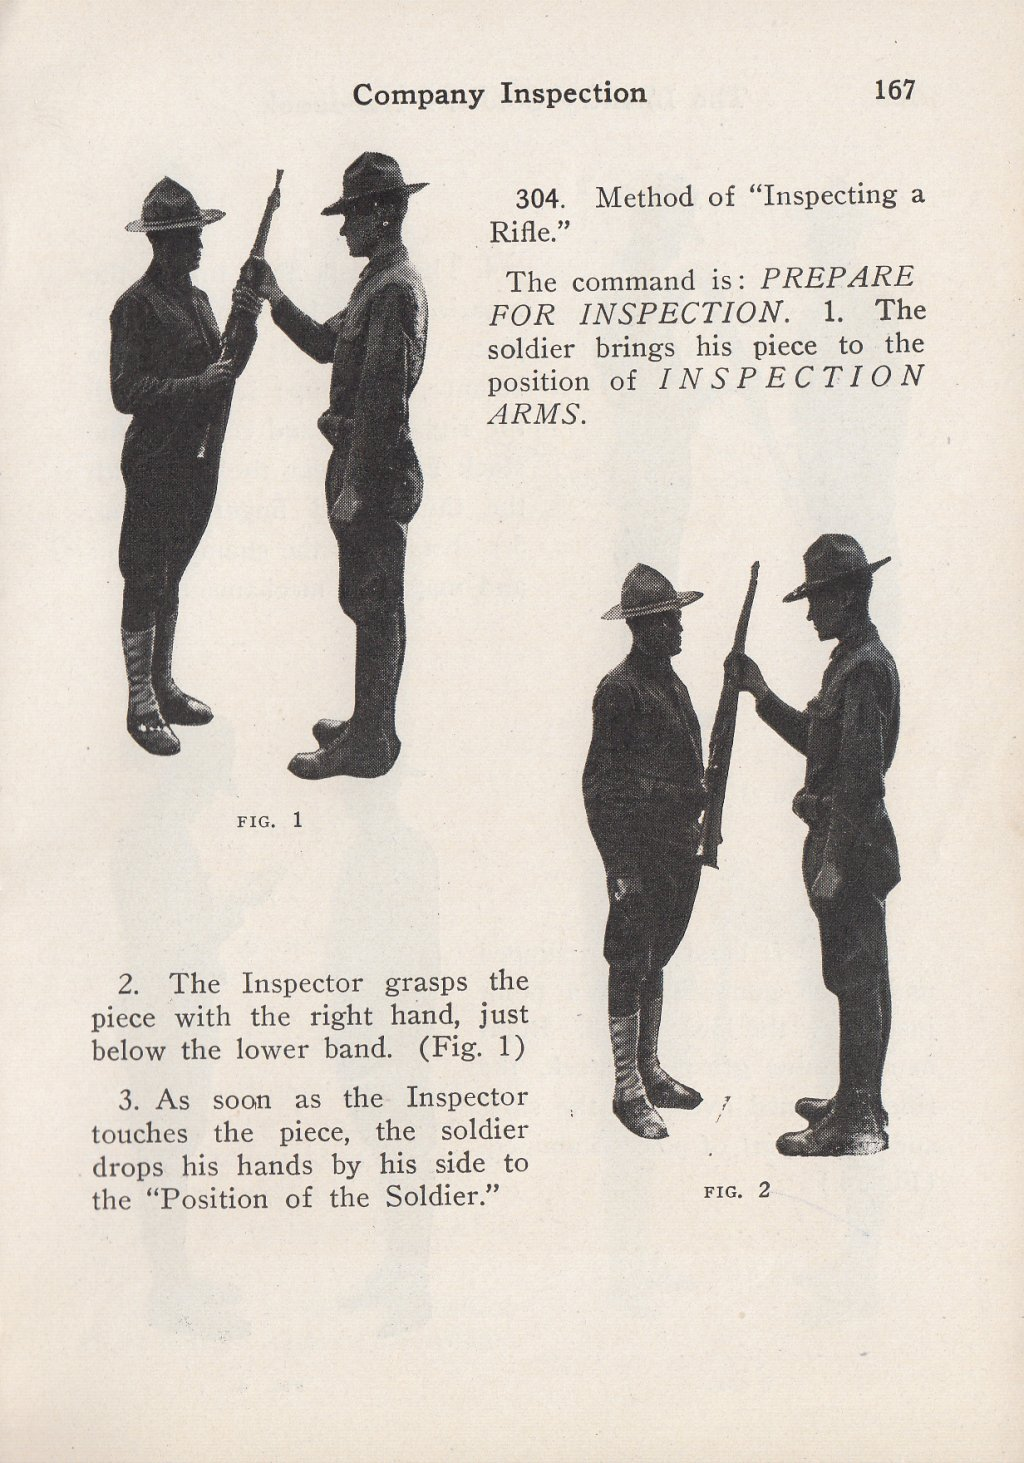 314th Infantry Regiment - Infantry Soldiers Handbook - Waldron - Page 167